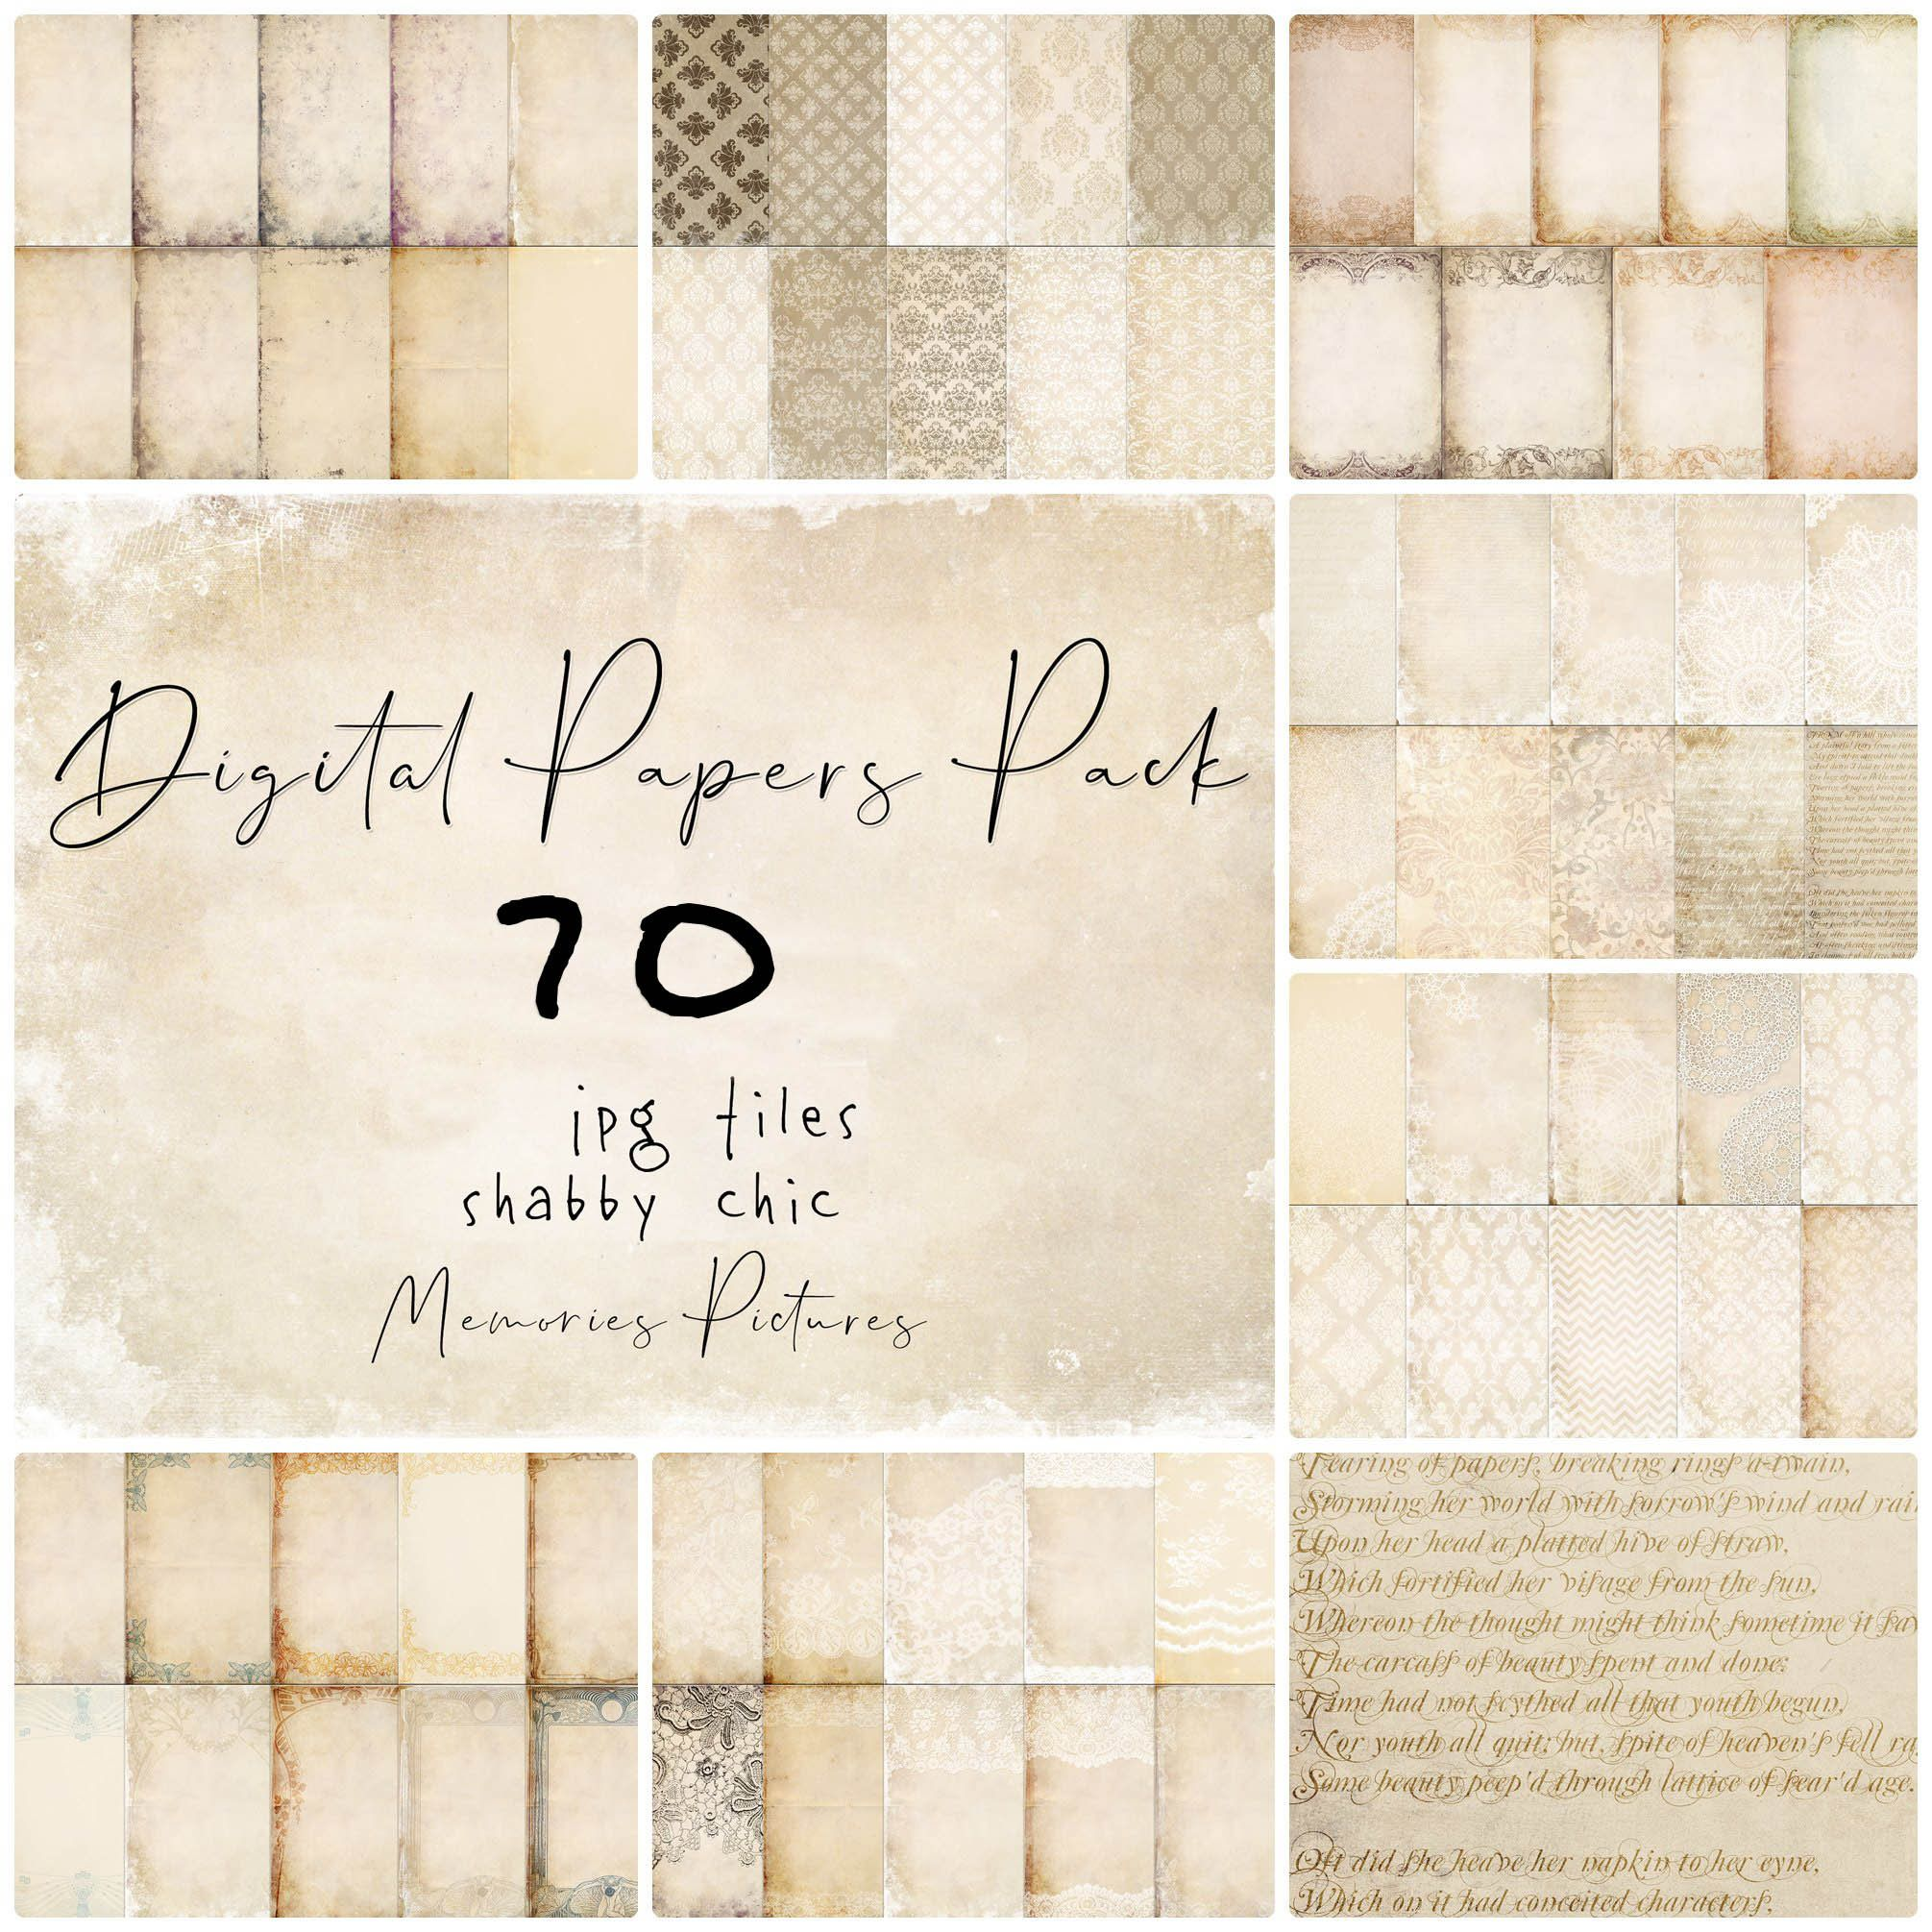 Digital Paper Pack Files Big Collection Shabby Chic Beige Etsy Digital Paper Digital Paper Pack Paper Pack